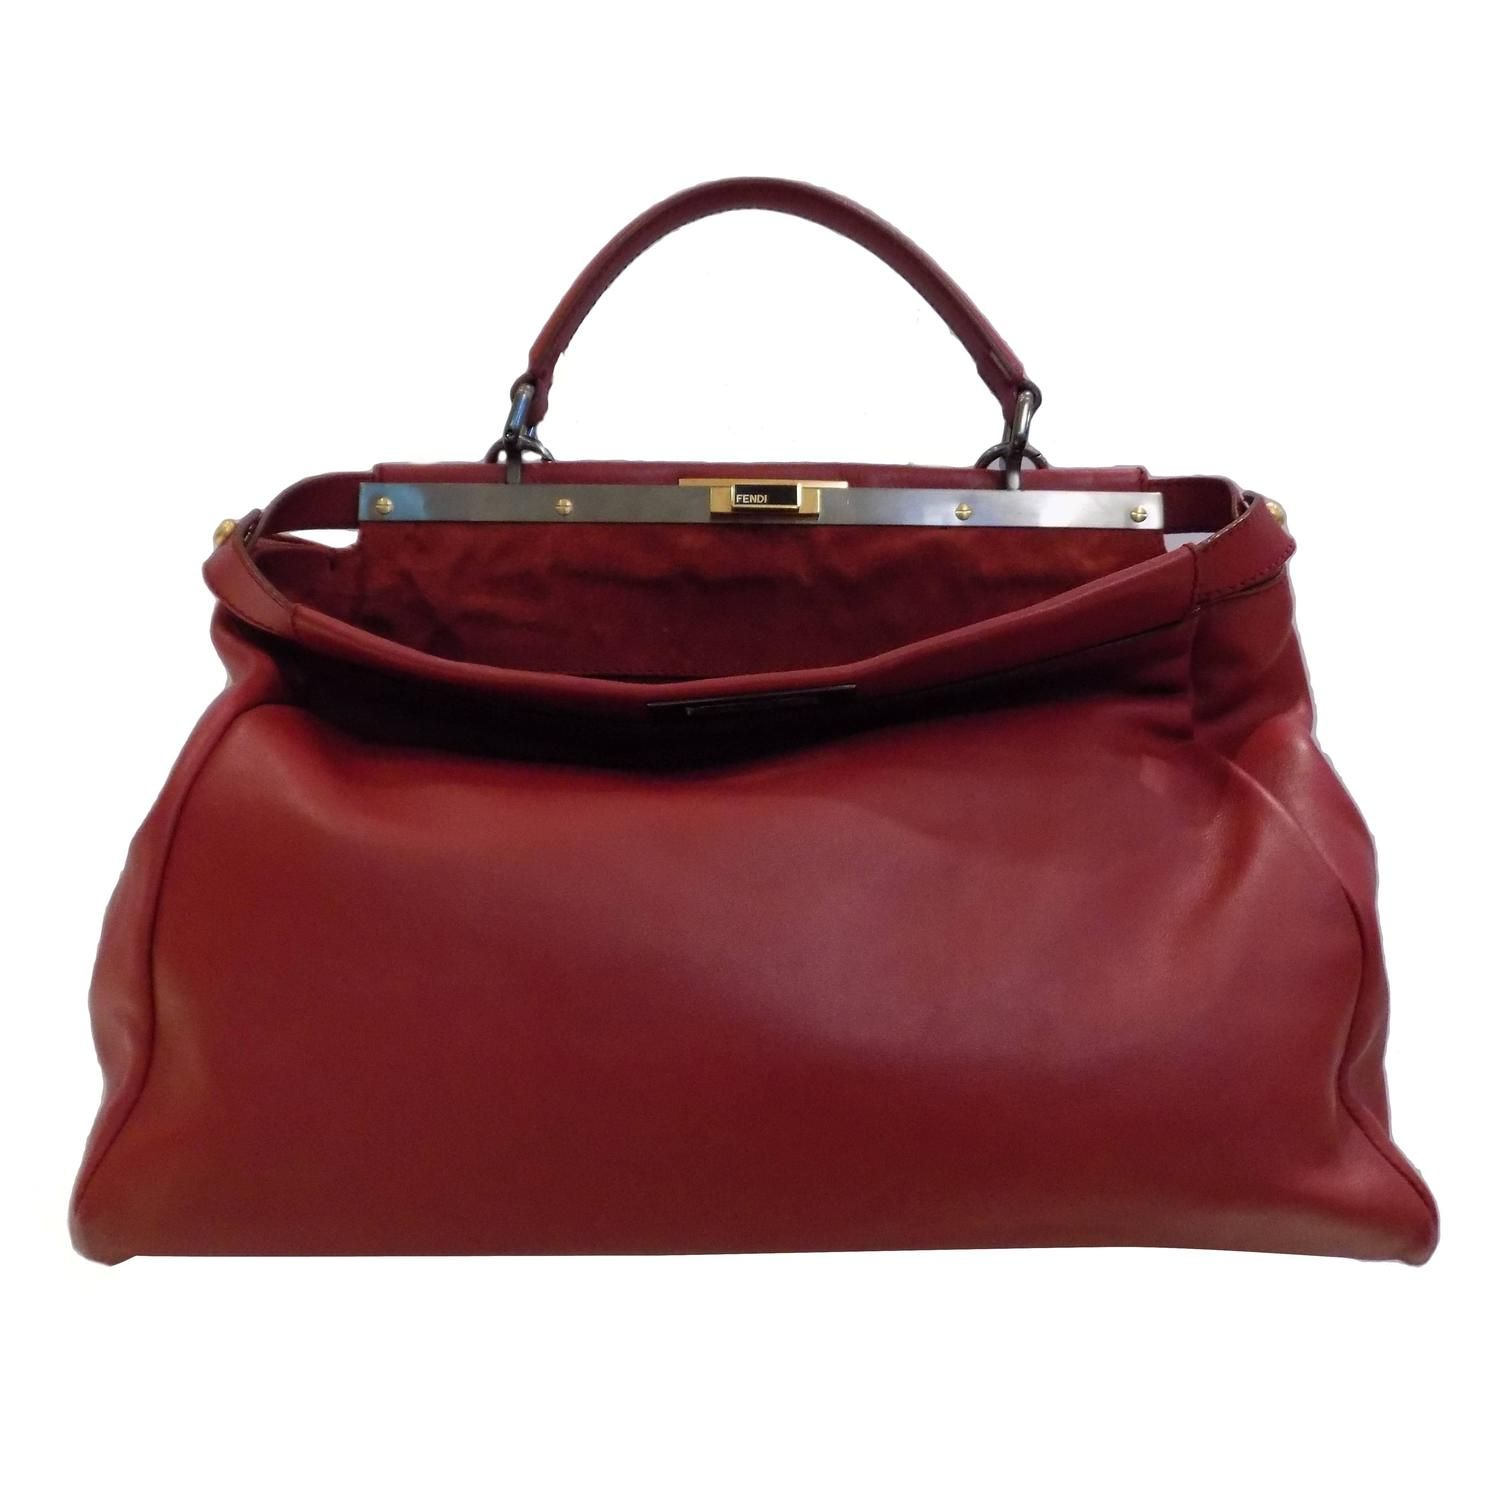 09b69ea34a0 Fendi Red Peekaboo Bag   My 1stdibs Favorites   Pinterest   Bags ...